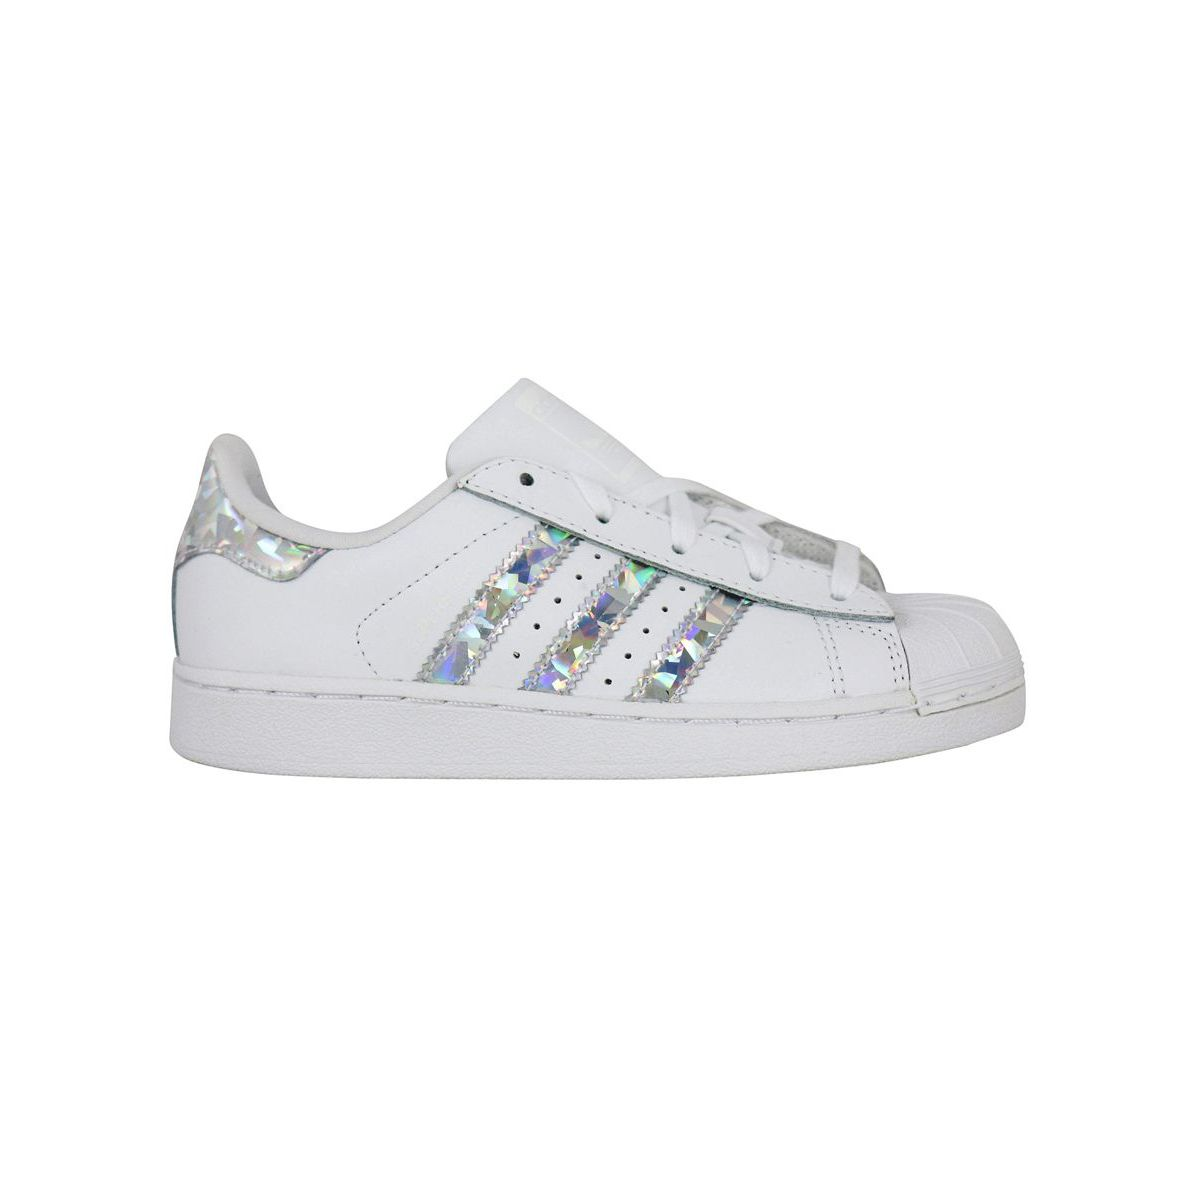 Sneakers CG6708 SUPERSTAR White / silver Adidas